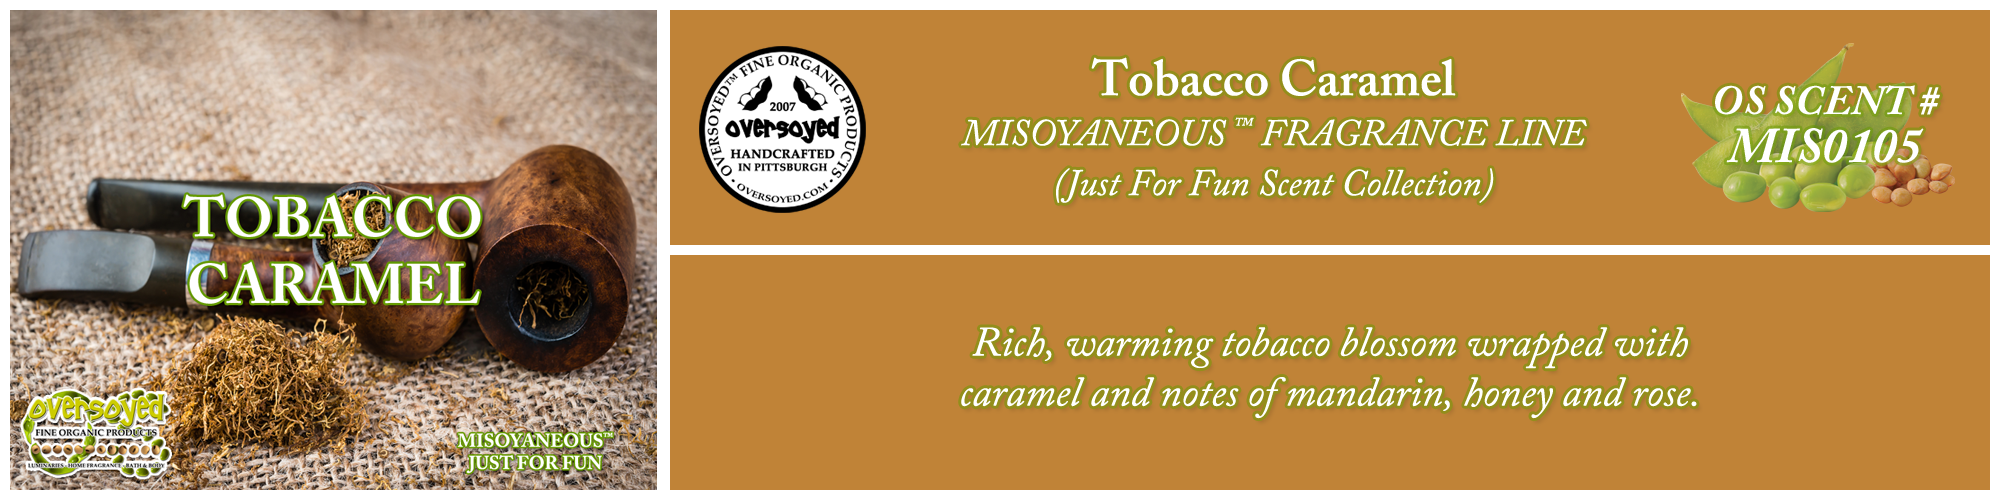 Tobacco Caramel Handcrafted Products Collection